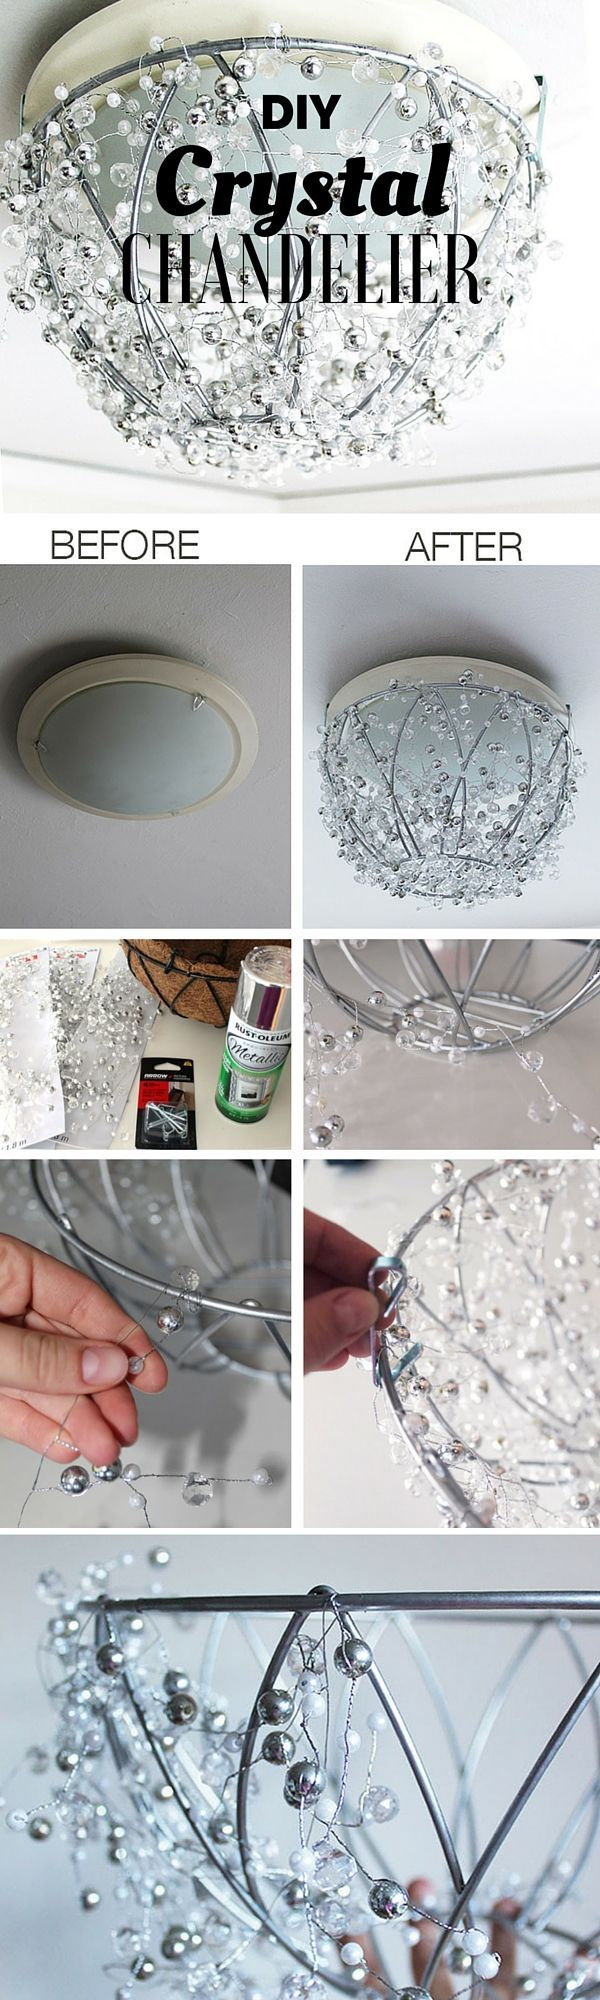 best 25 diy bedroom decor ideas on pinterest diy bedroom diy 15 unexpectedly brilliant home decor diys diy chandelierchandelier planterchandelier bedroomhanging plantersideas